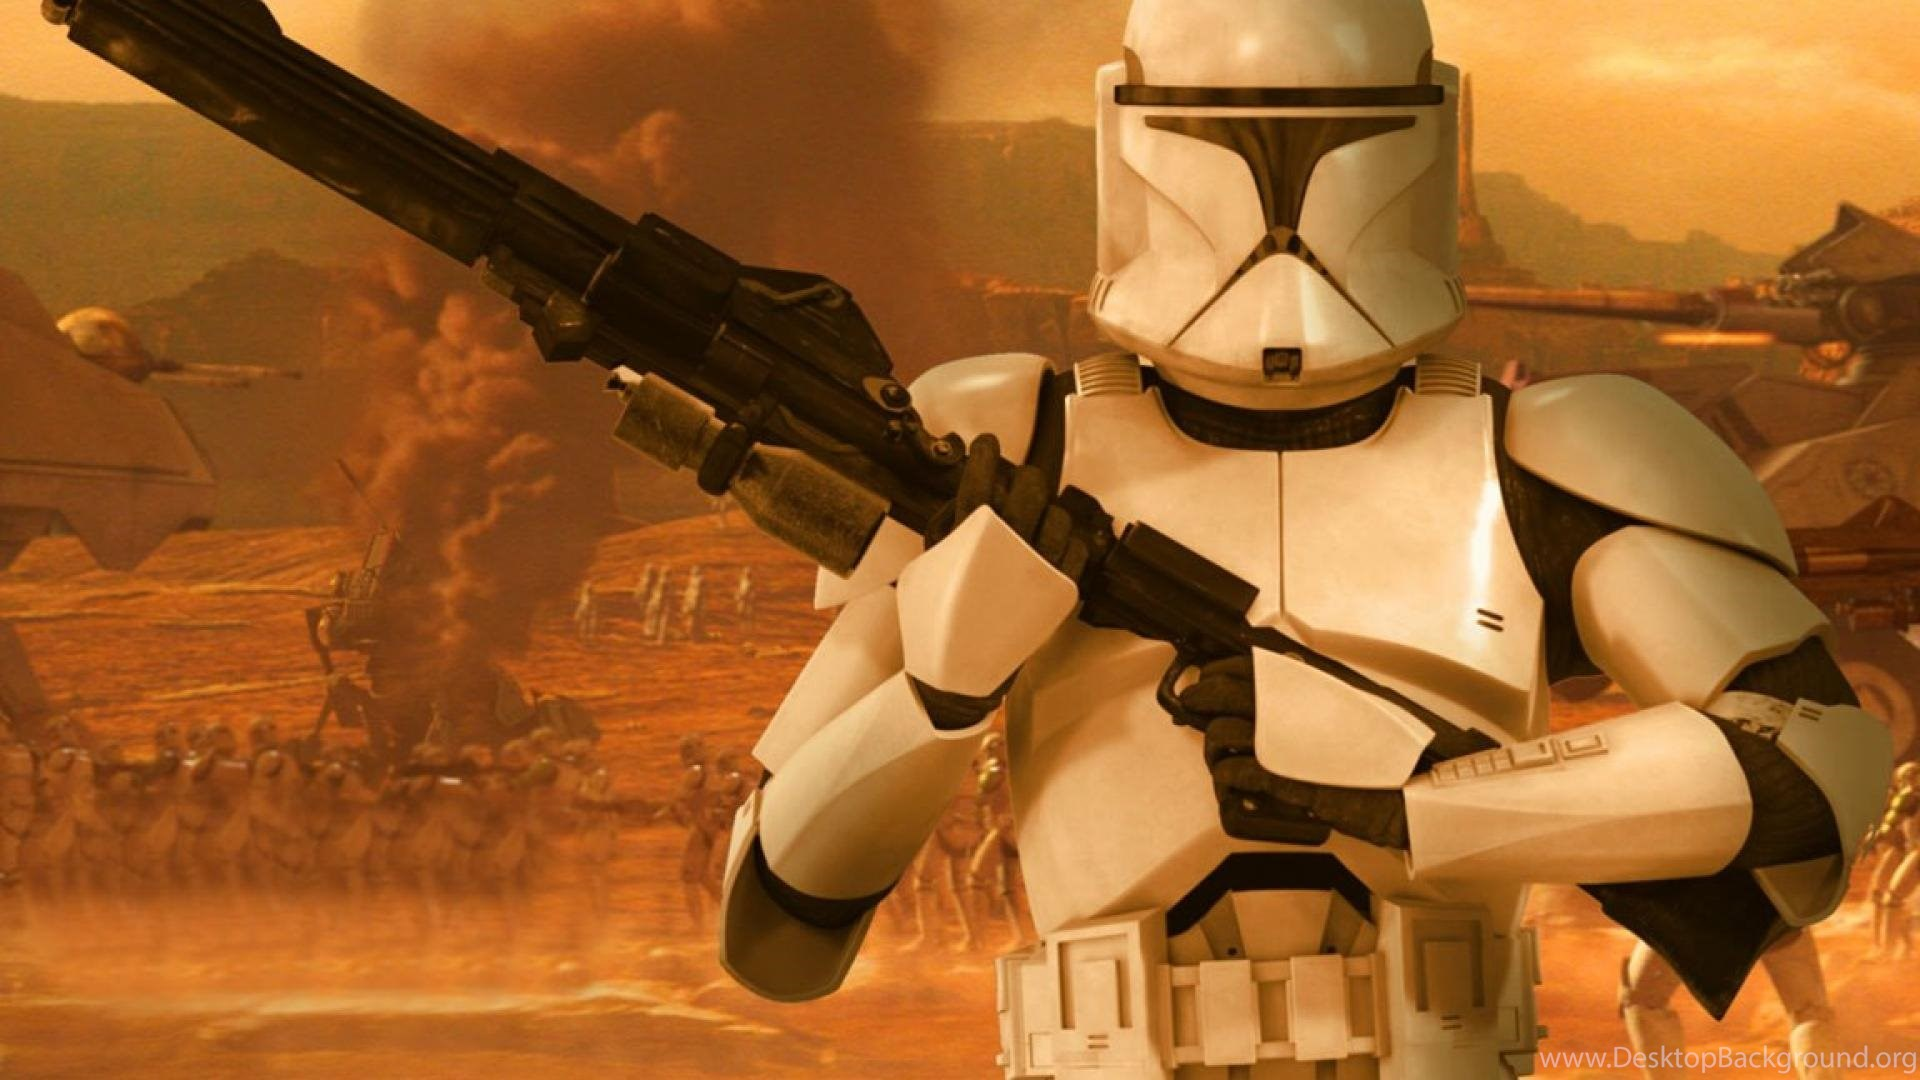 Star Wars The Clone Geonosis Movie Hd Wallpapers Wallpapers